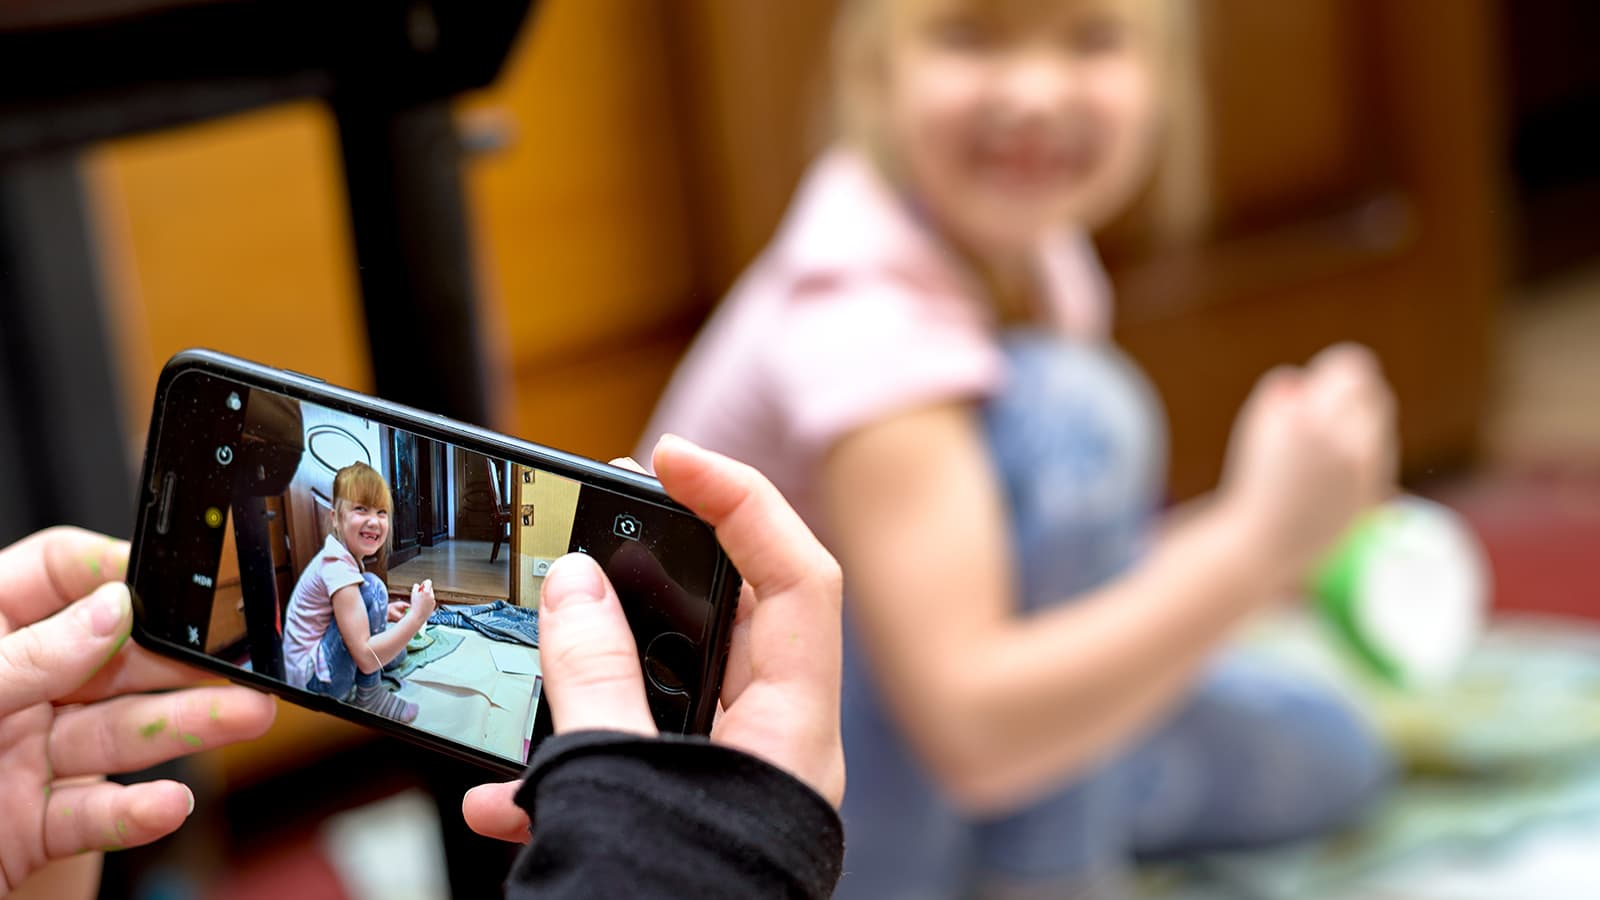 Researchers Reveal Why Posting Pictures of Your Kids Can Be Dangerous